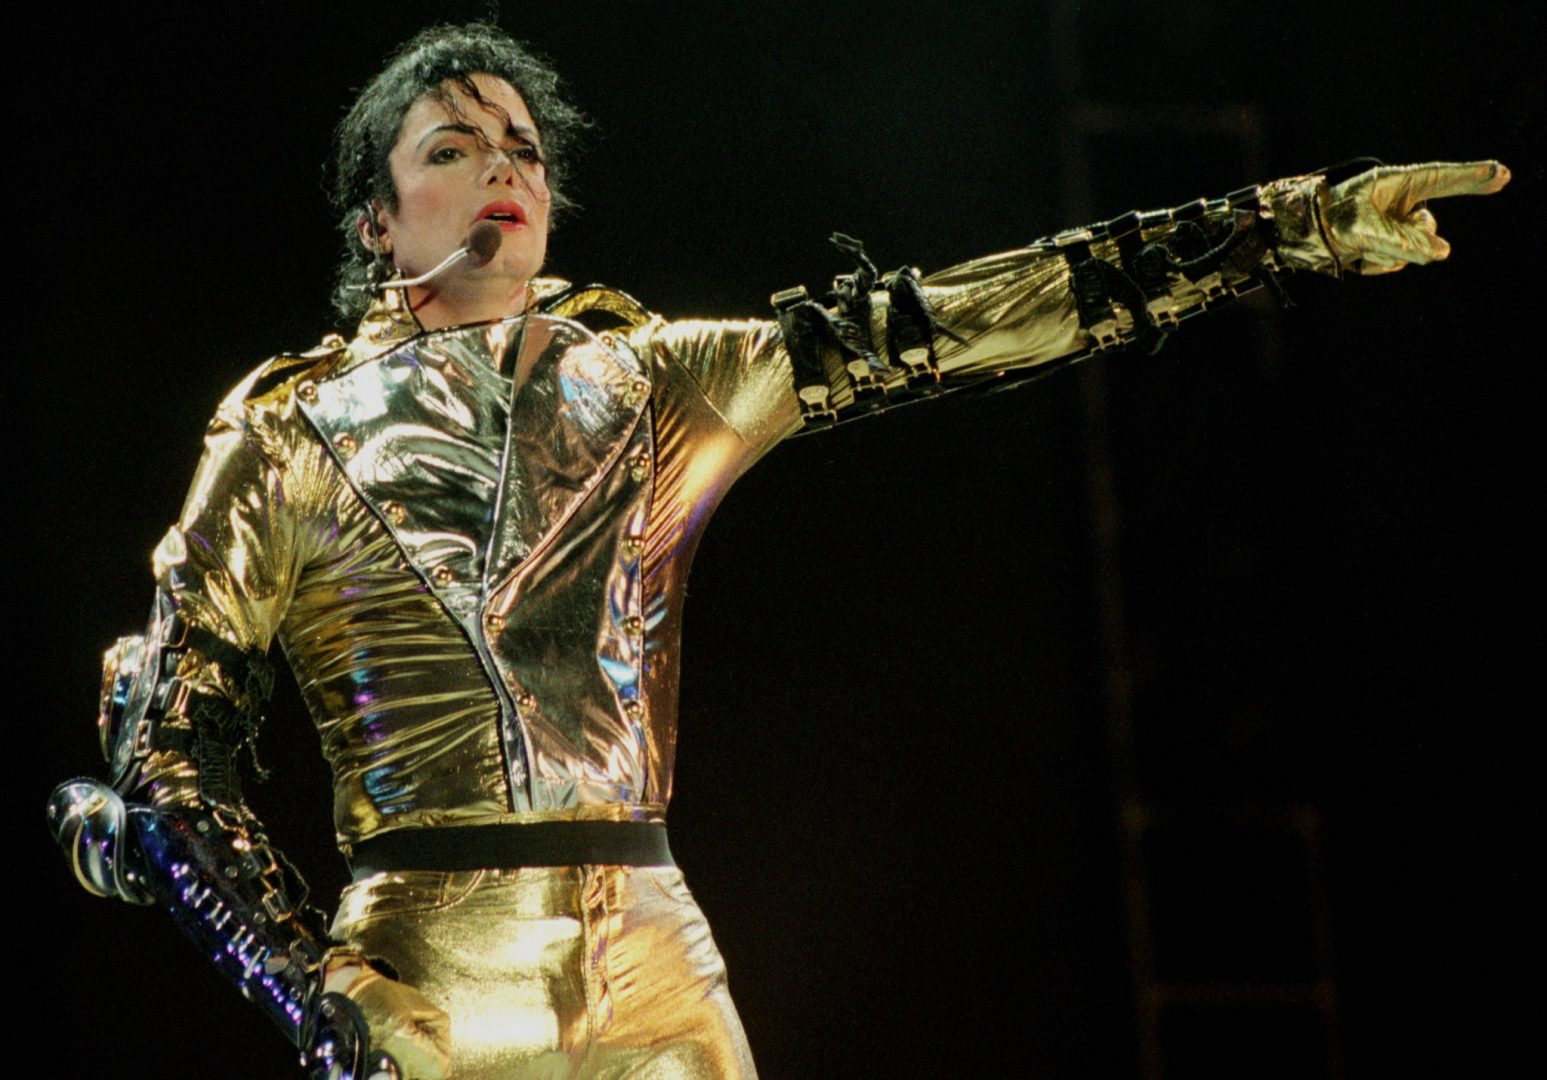 Michael Jackson performs on stage during his HIStory tour